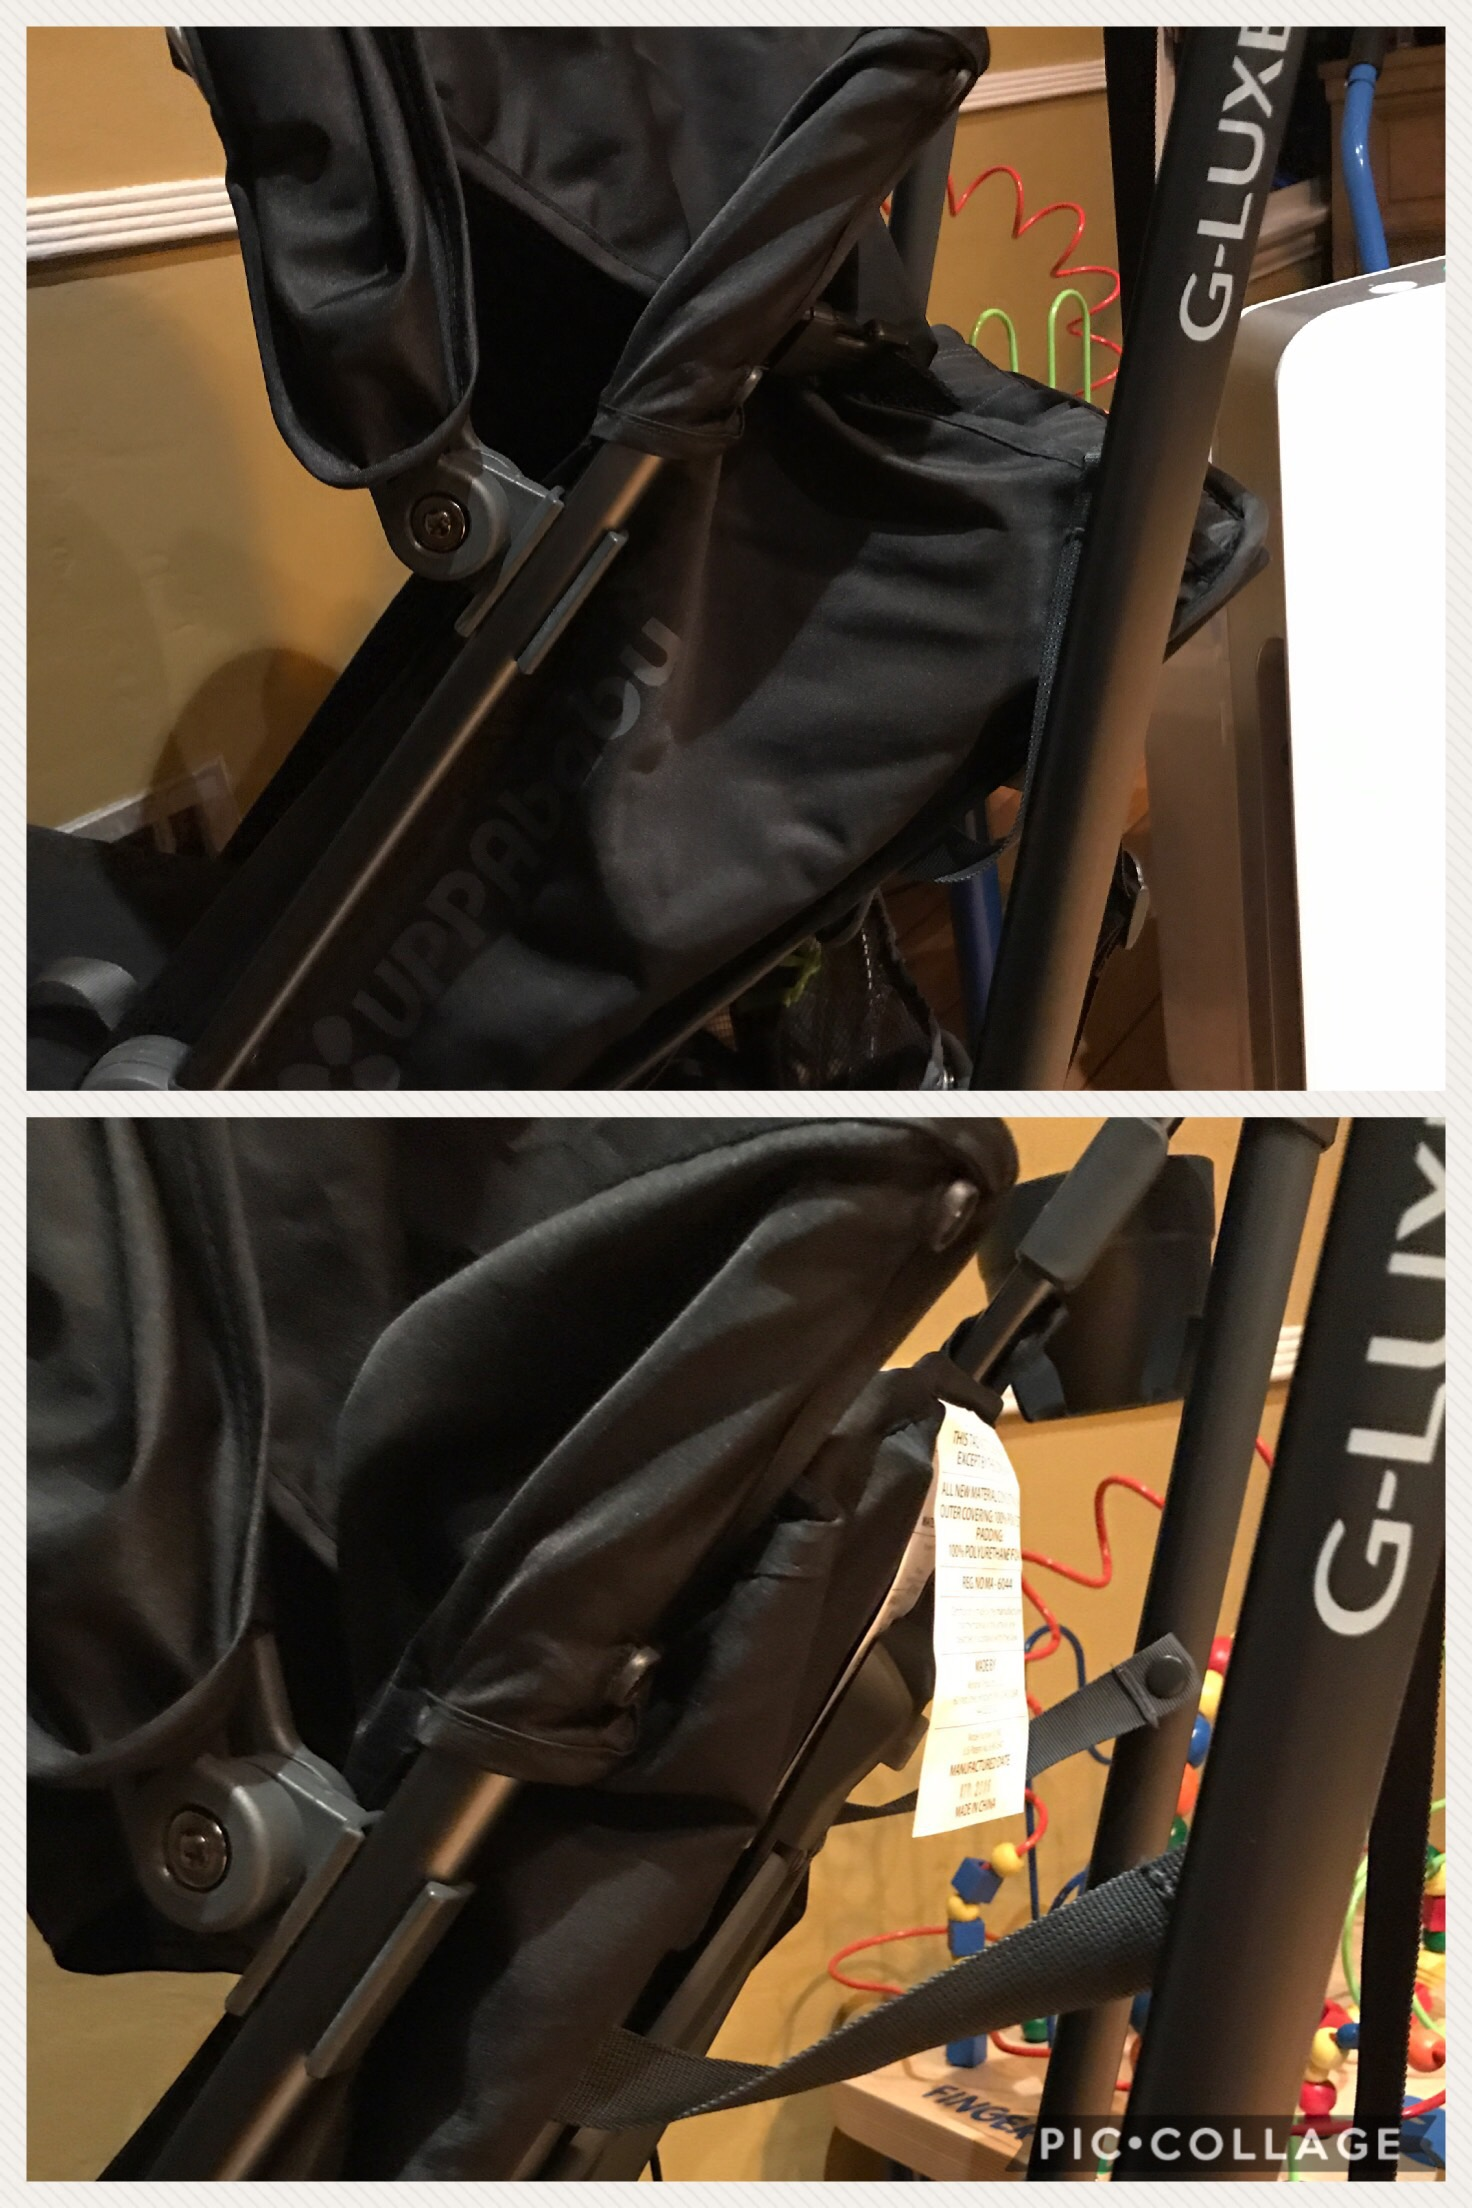 The ... image number 2 of uppababy g luxe canopy replacement ... & Uppababy G Luxe Canopy Replacement u0026 Sc 1 St StrollerStore